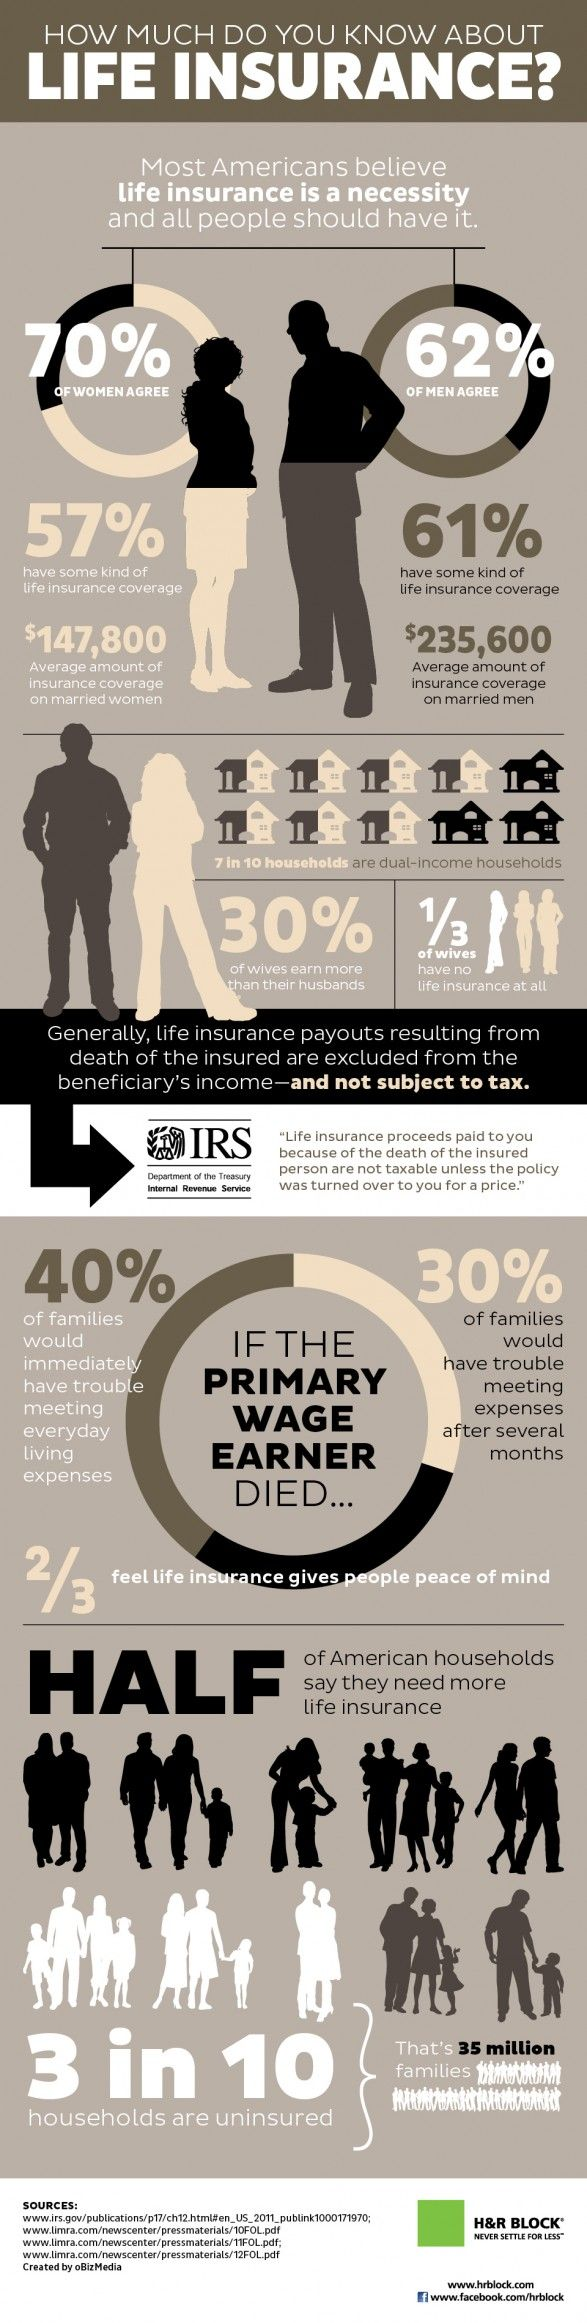 According to most Americans, life insurance is a must-have. Canadians need to step up